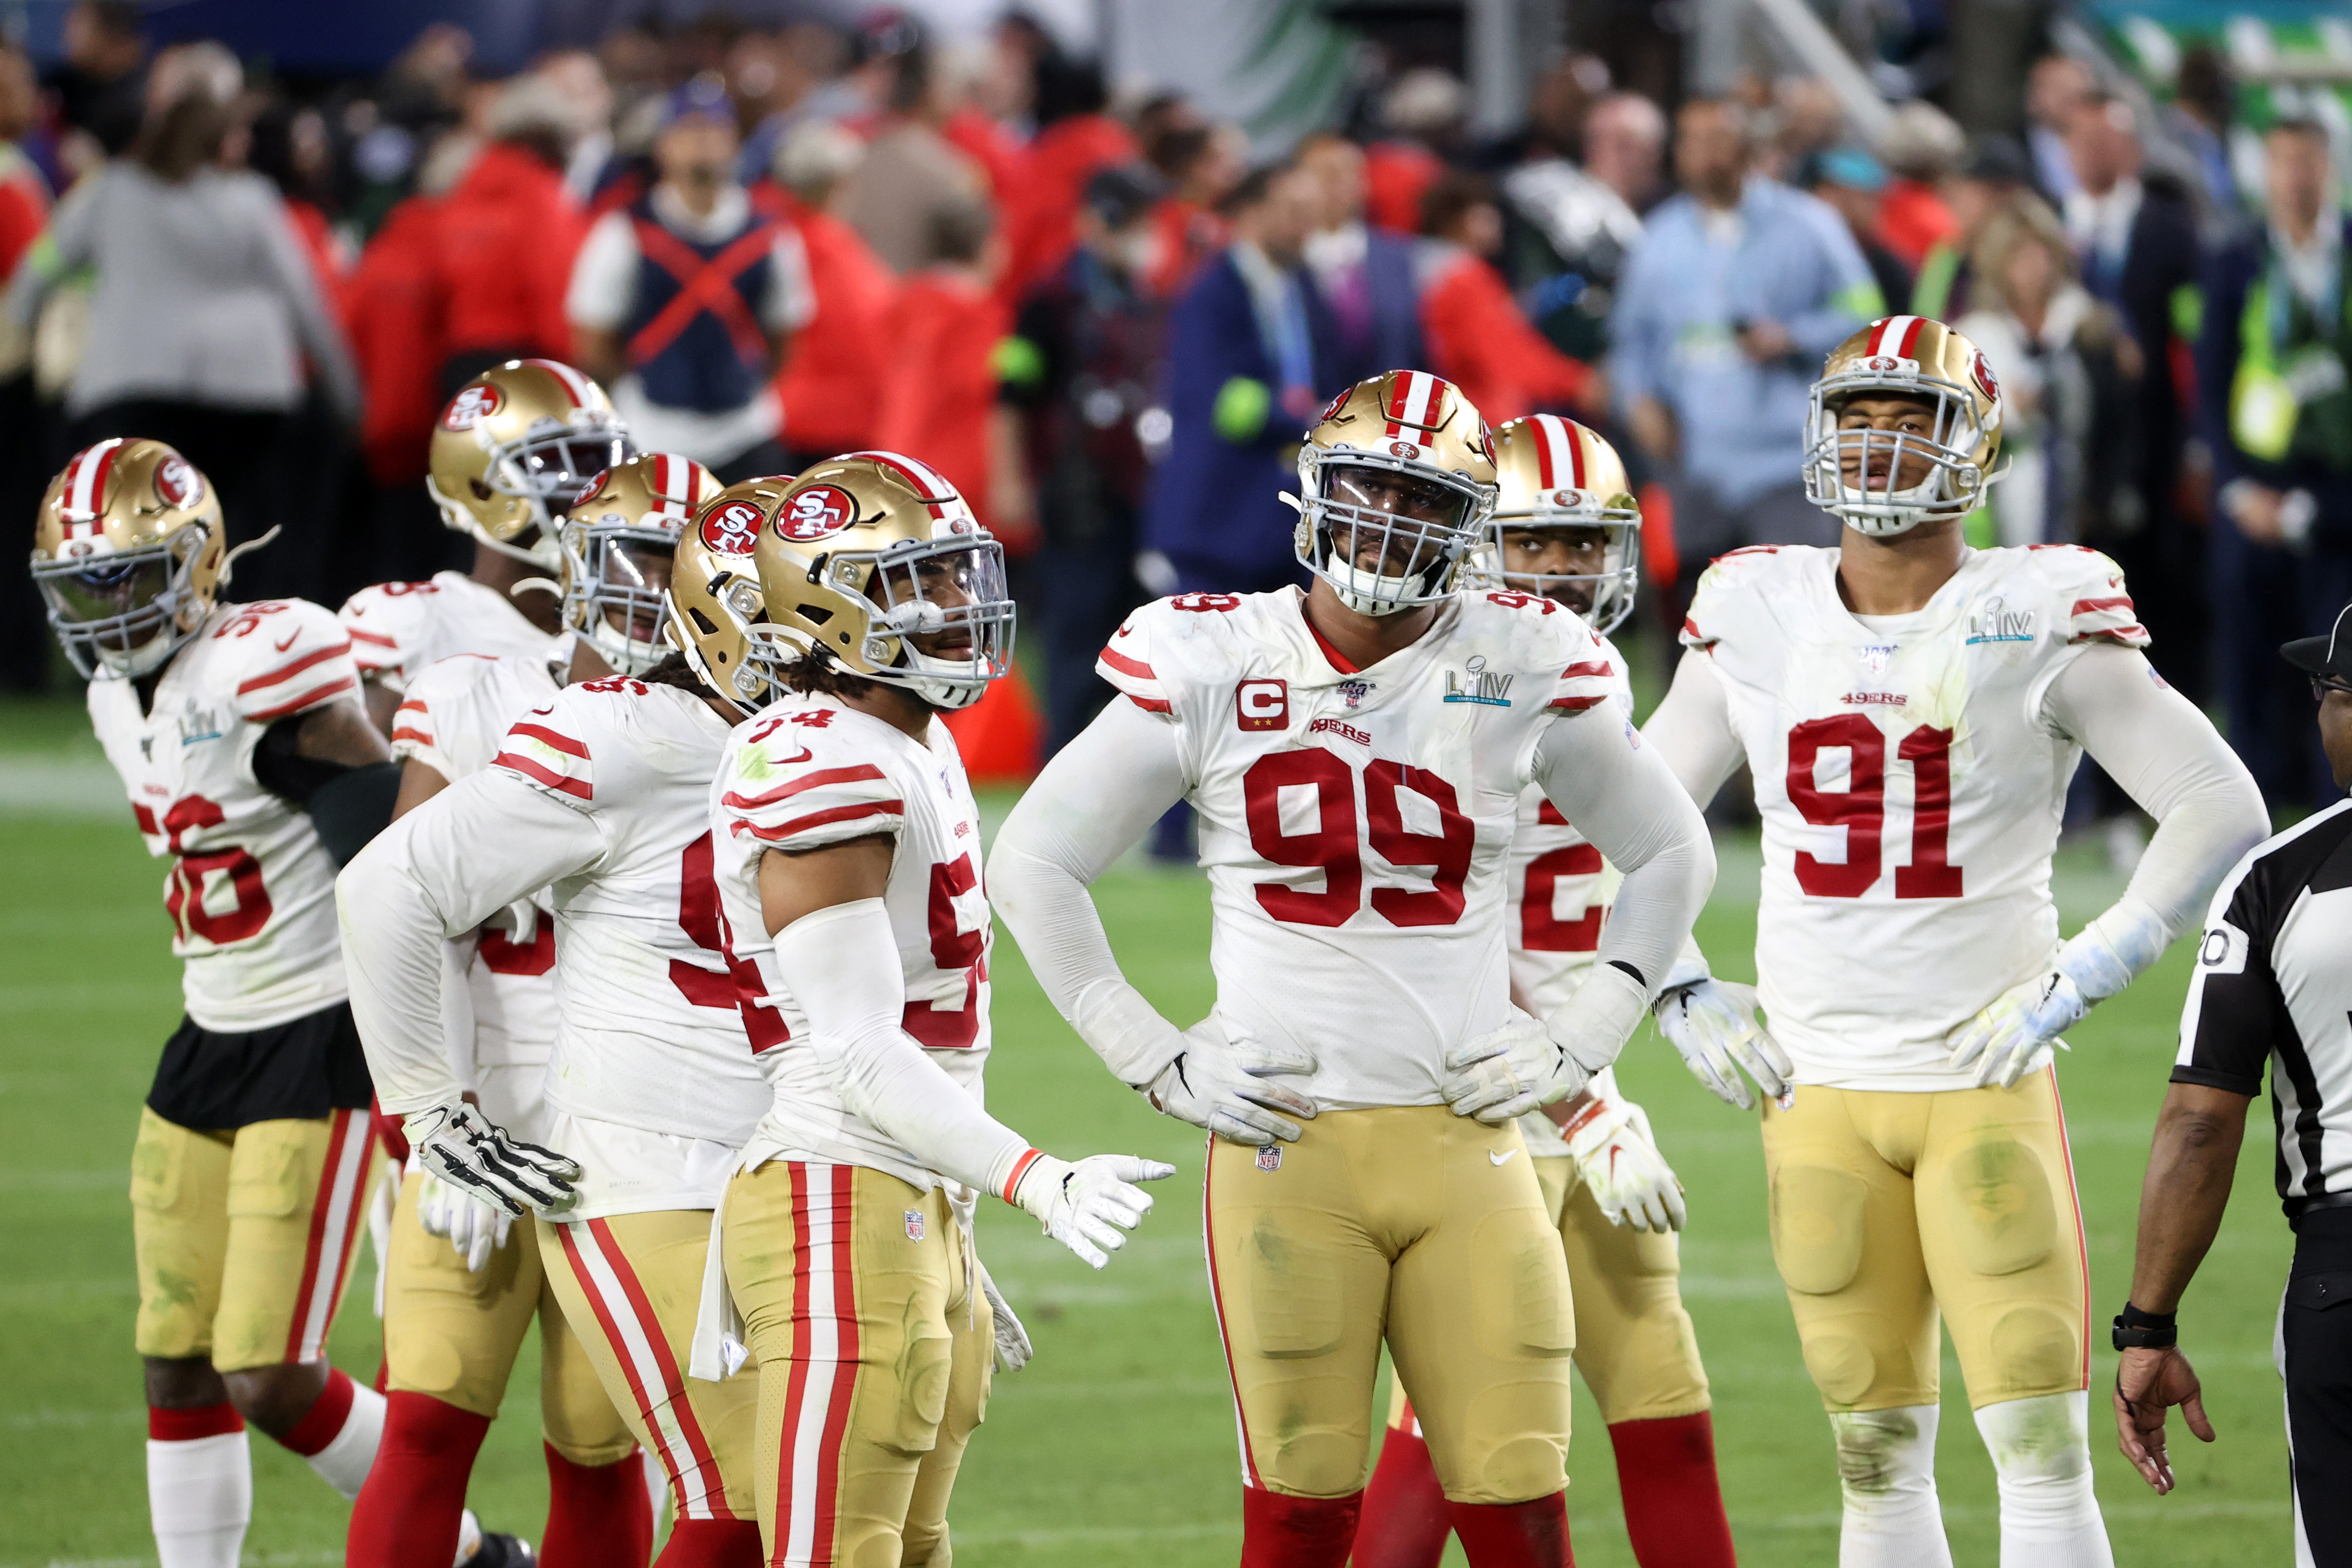 New CBA Playoff Format Could Have Benefited 49ers in Super Bowl LIV